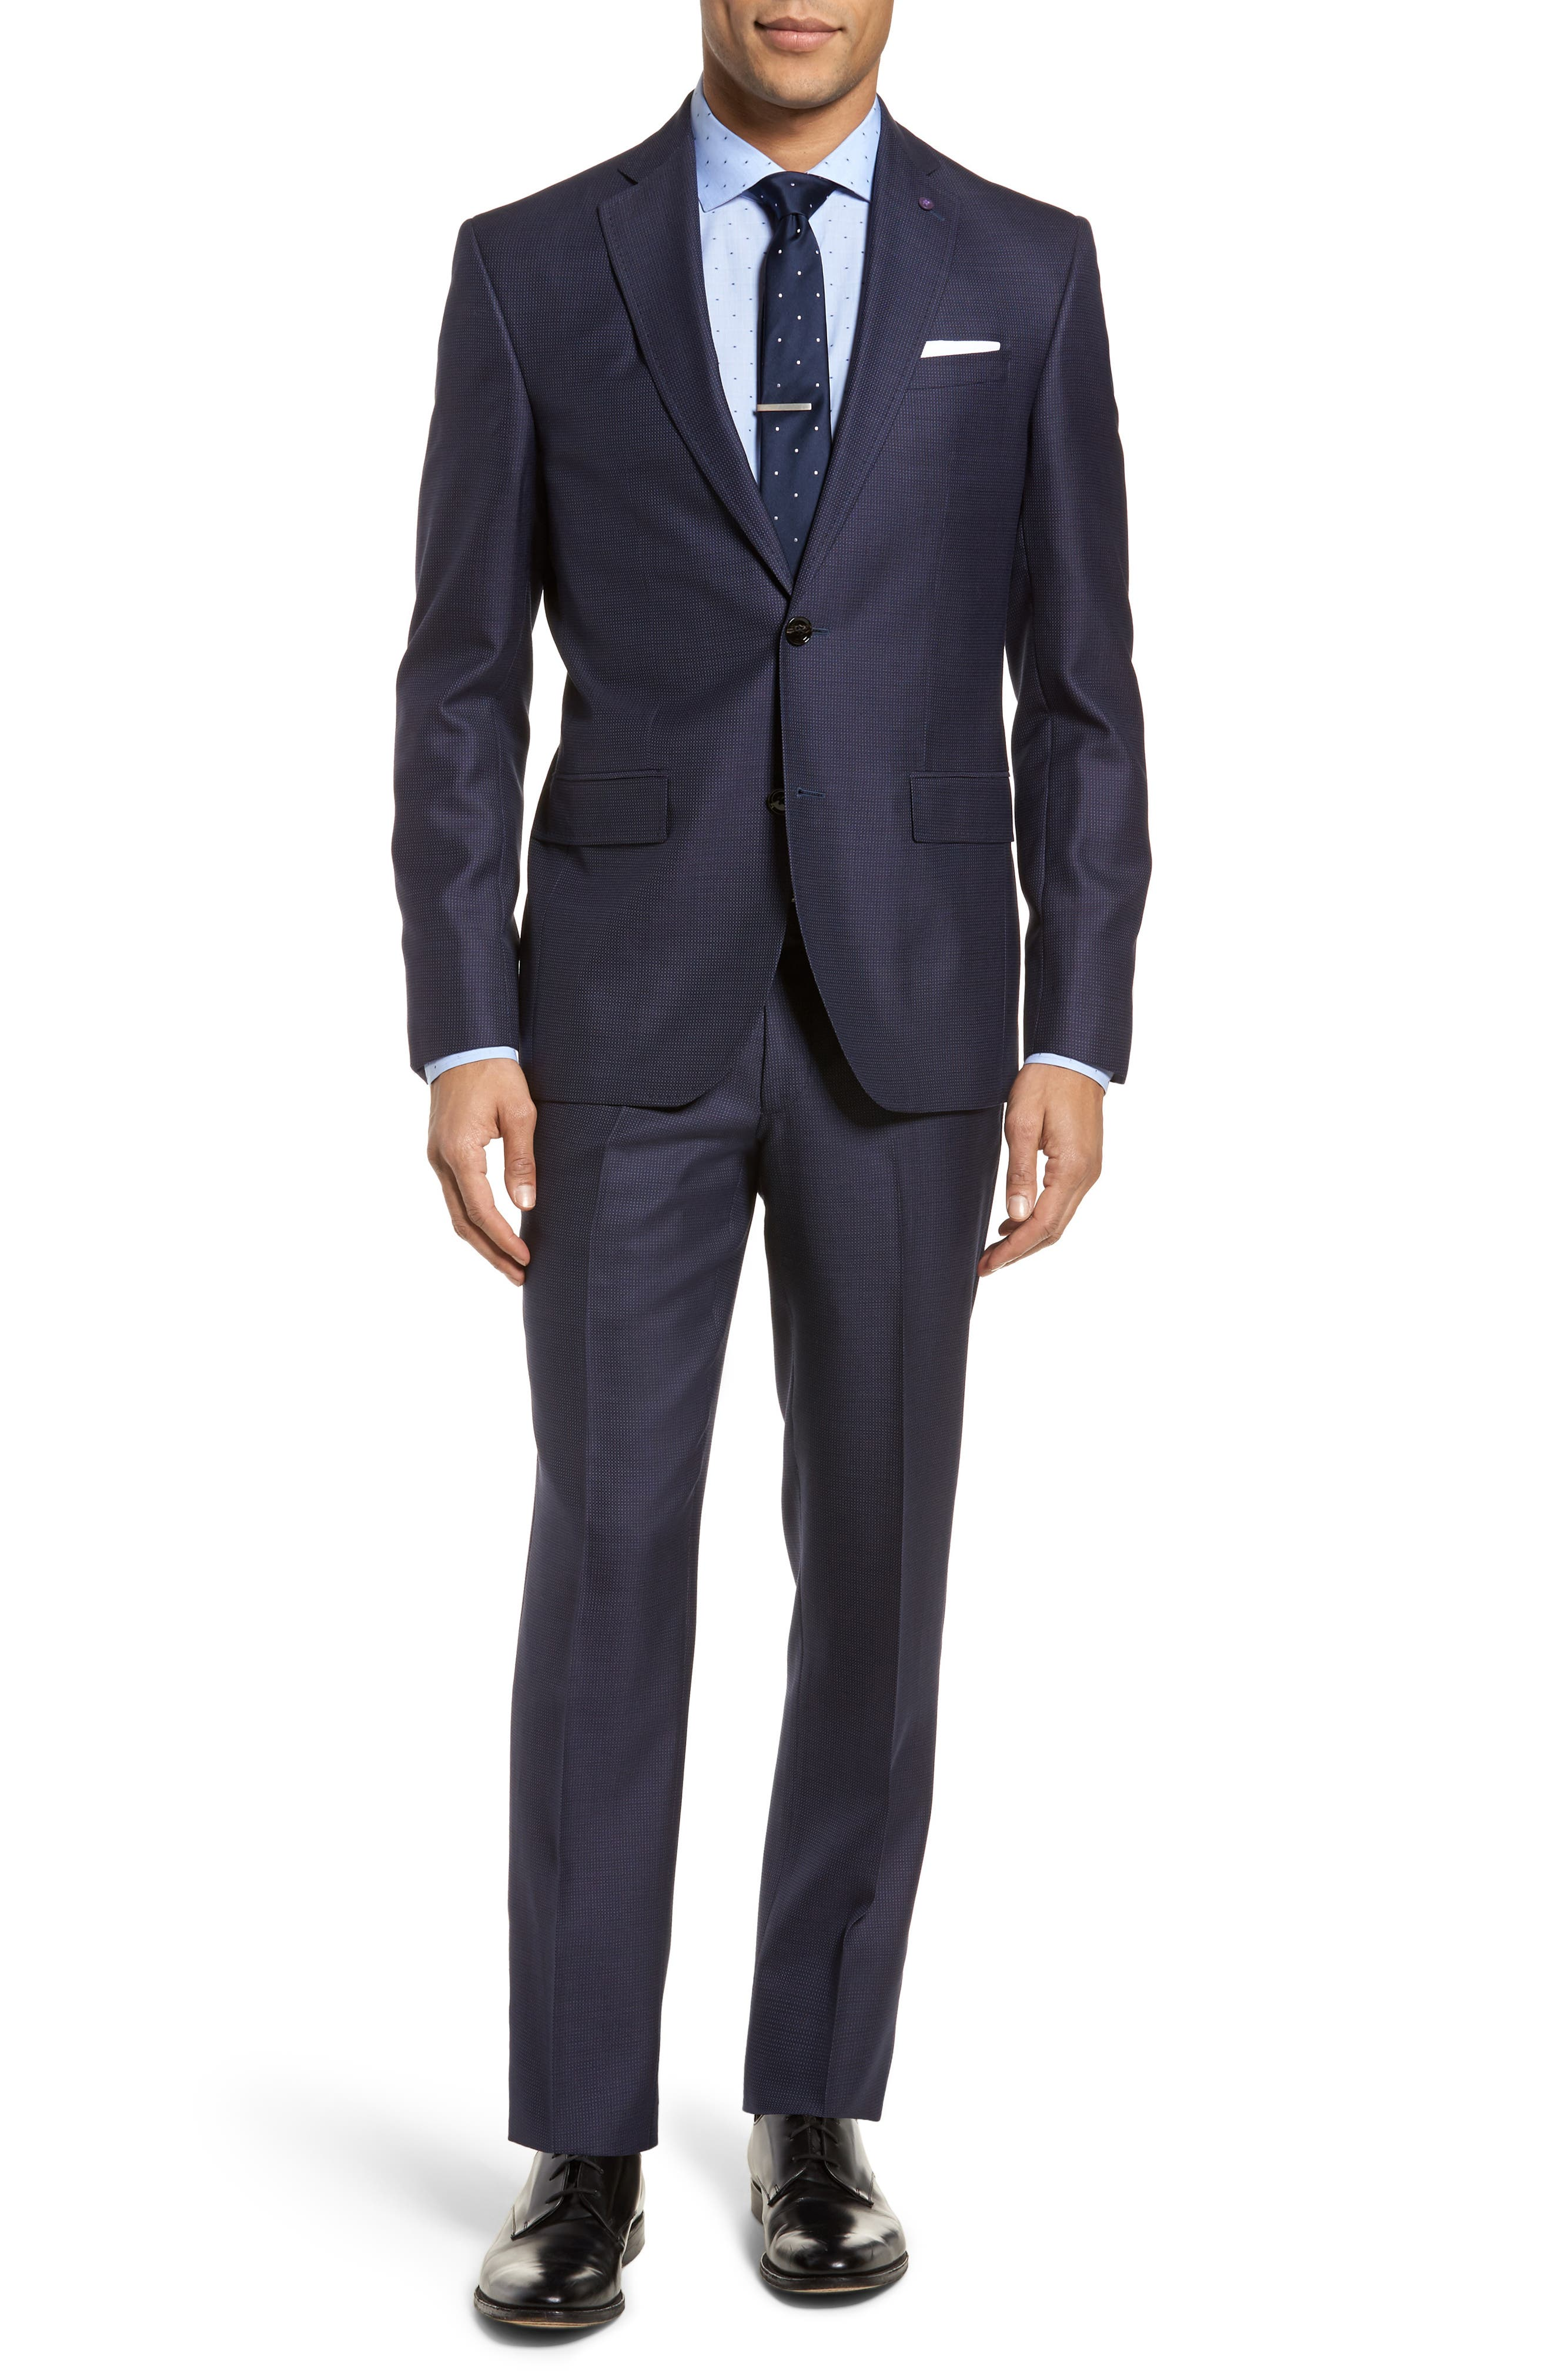 Roger Extra Slim Fit Solid Wool Suit,                             Main thumbnail 1, color,                             410